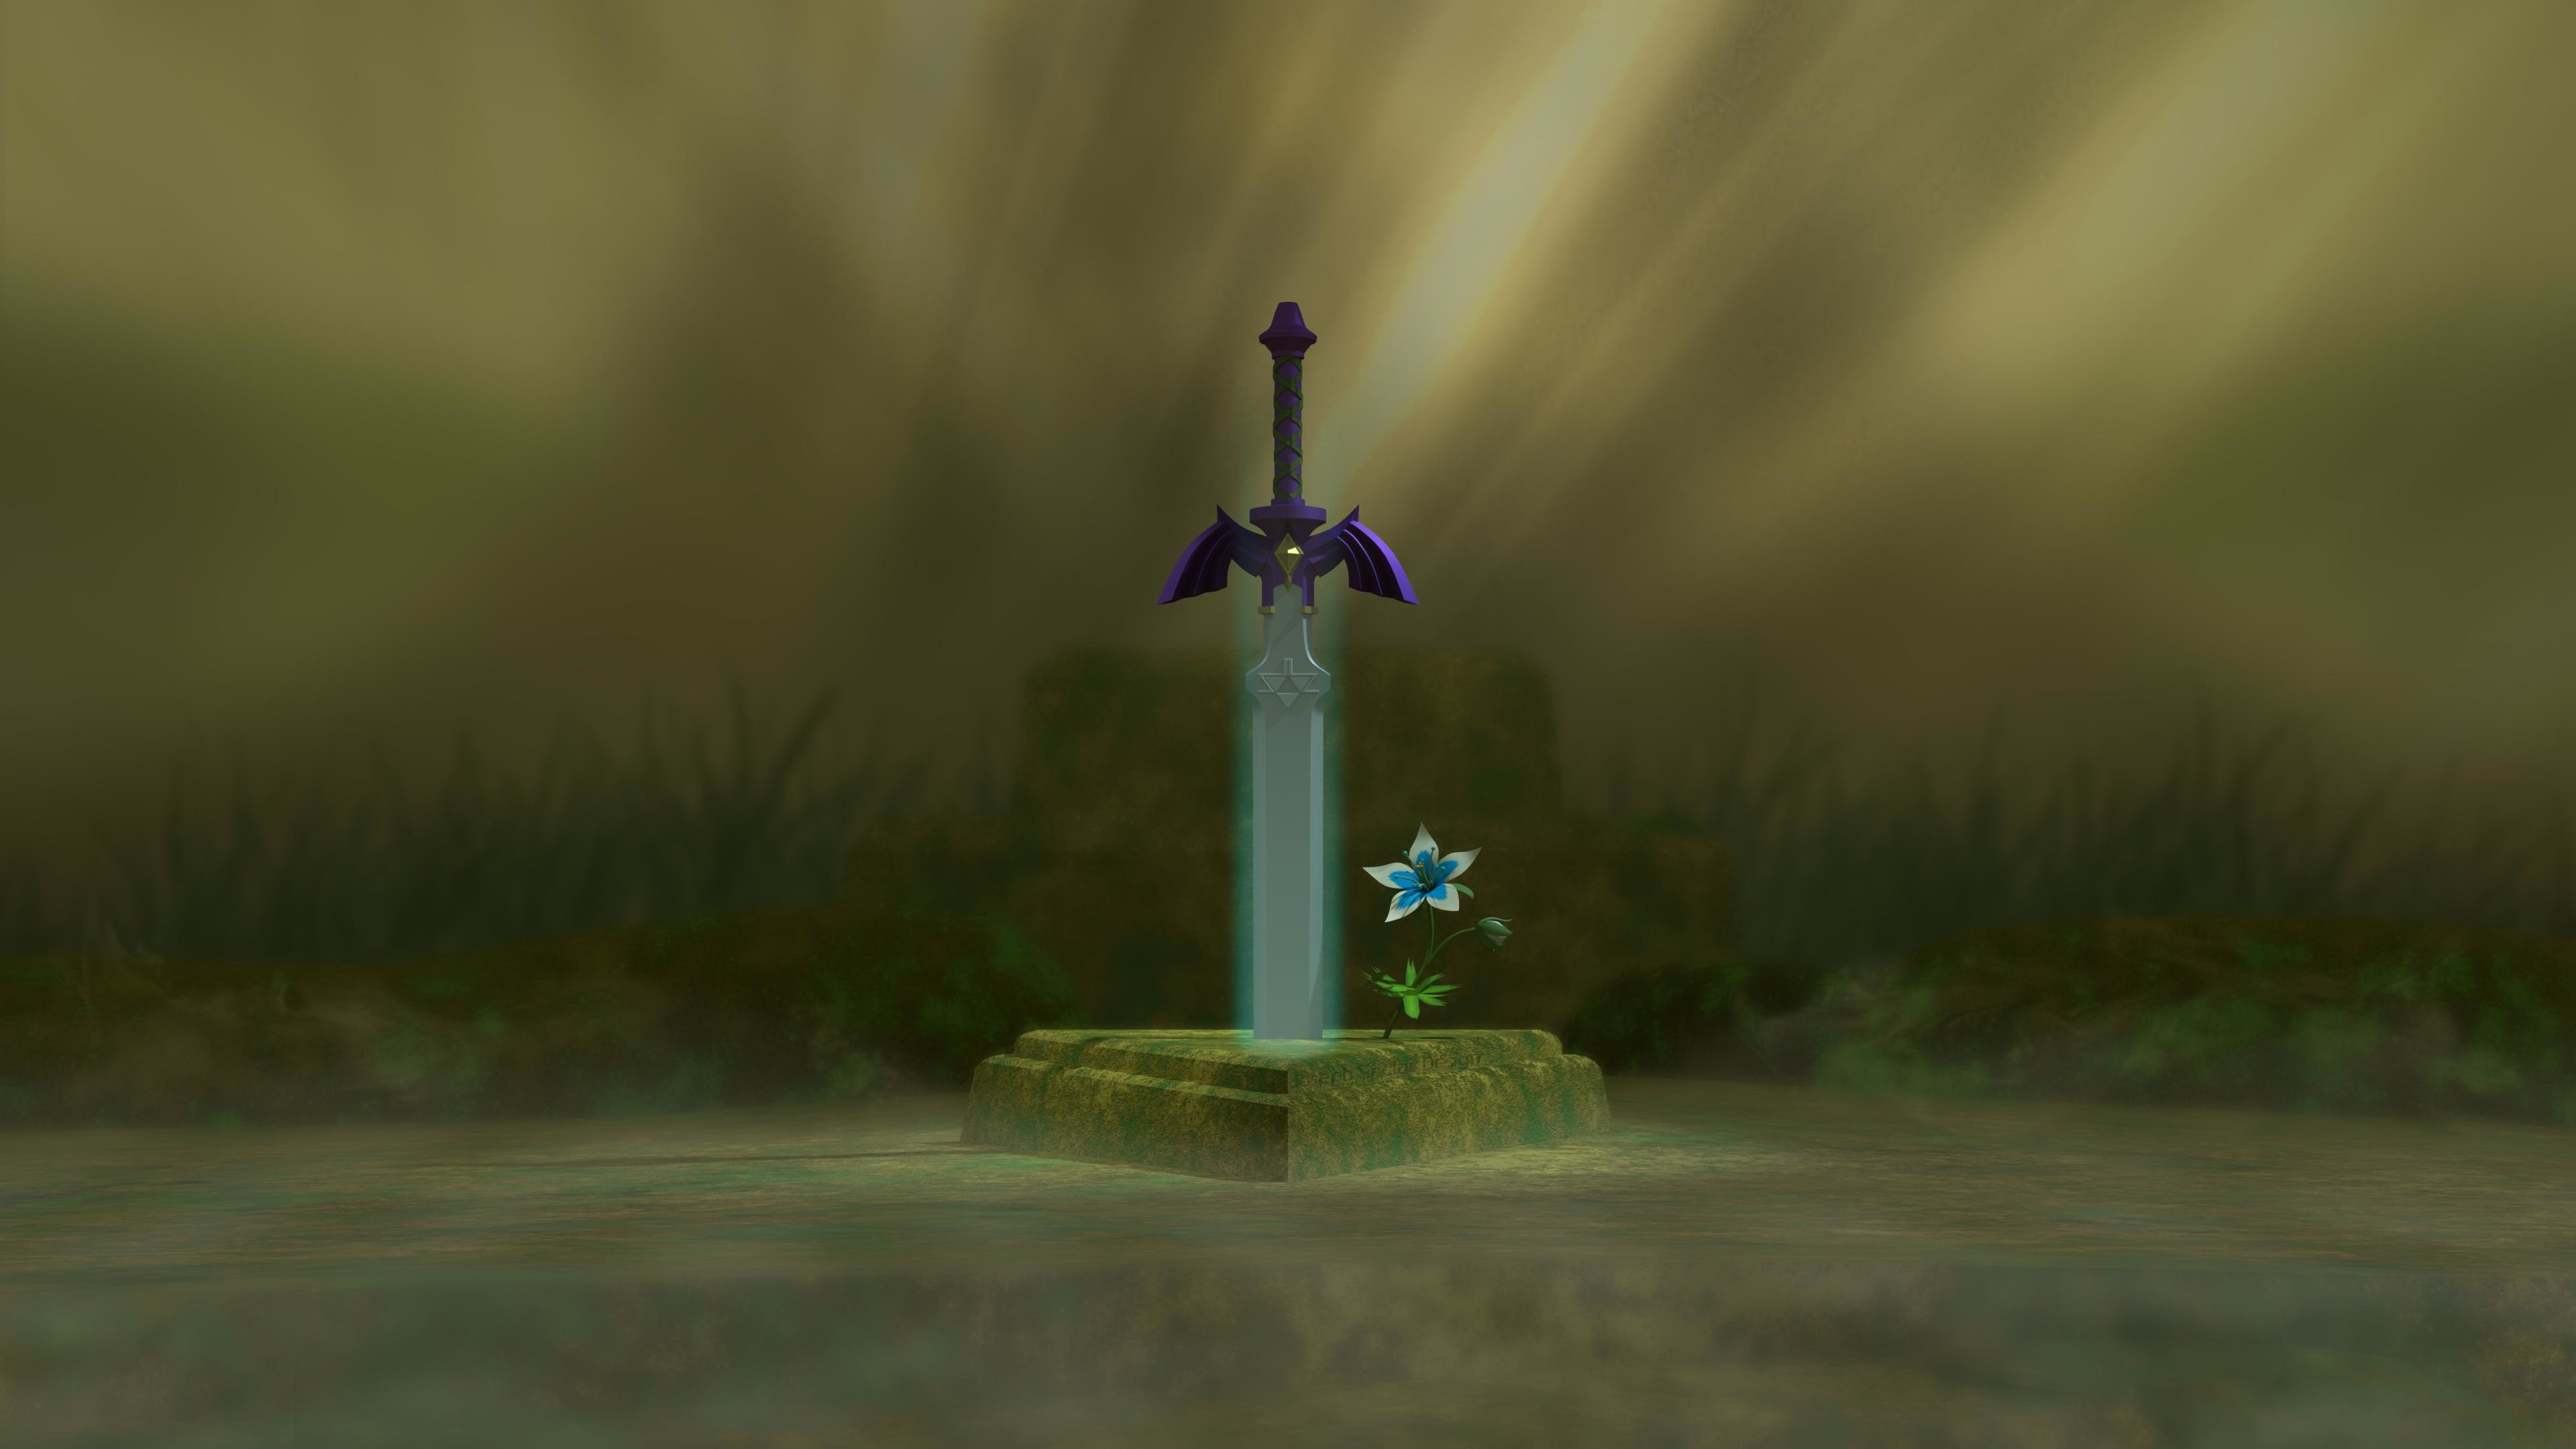 Master Sword Wallpaper 72 Images